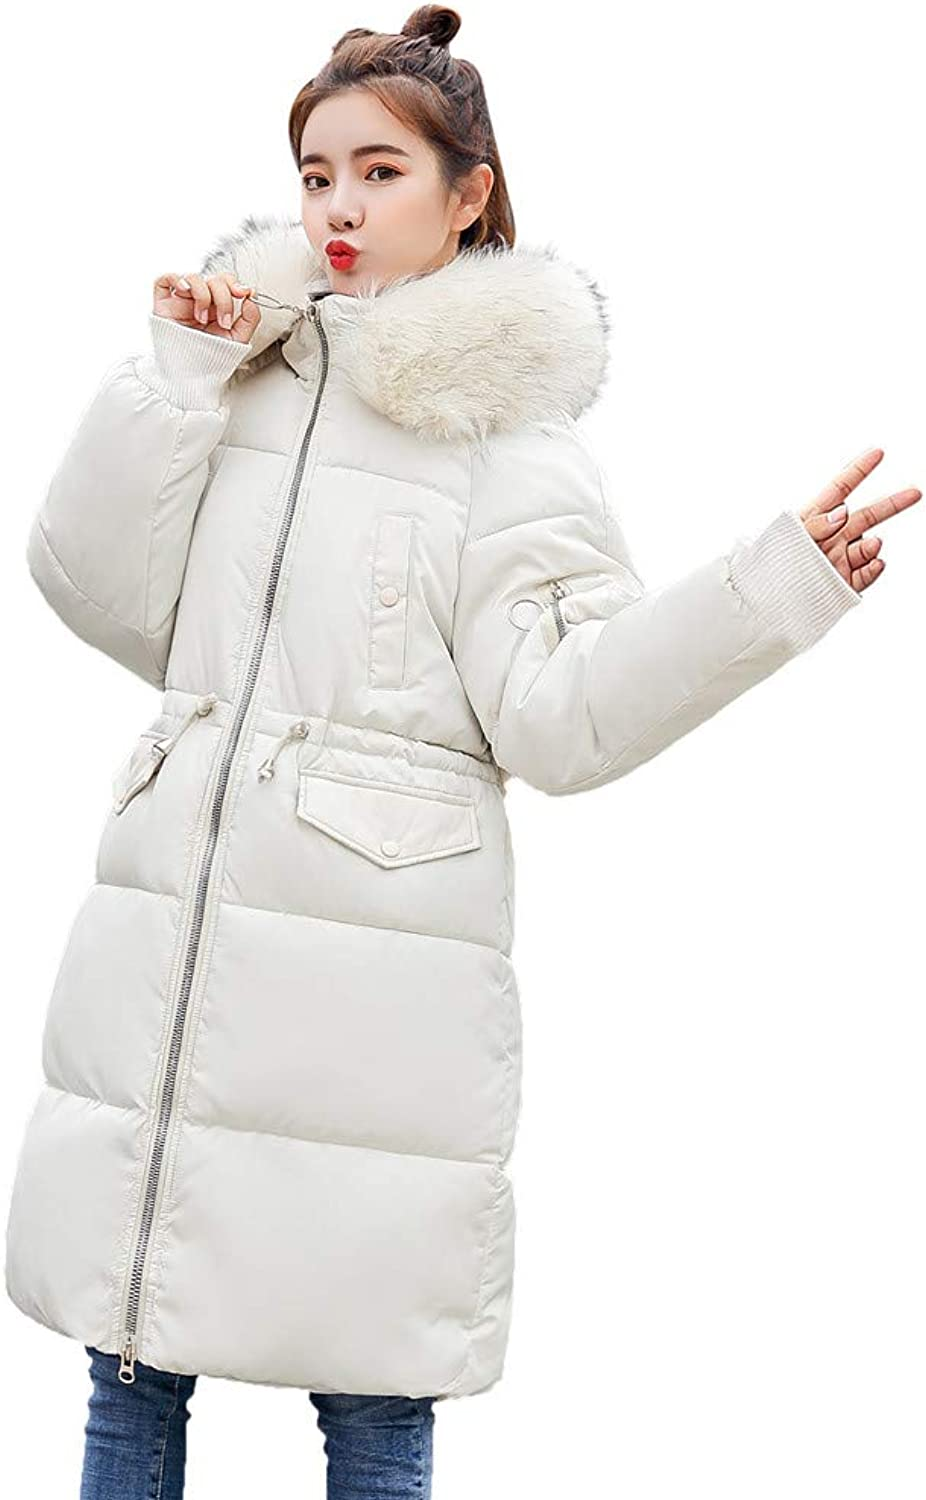 Laimeng_World Women's Thickened Coat Long Sleeve Outerwear CottonPadded Jackets Pocket Fur Hooded Coats